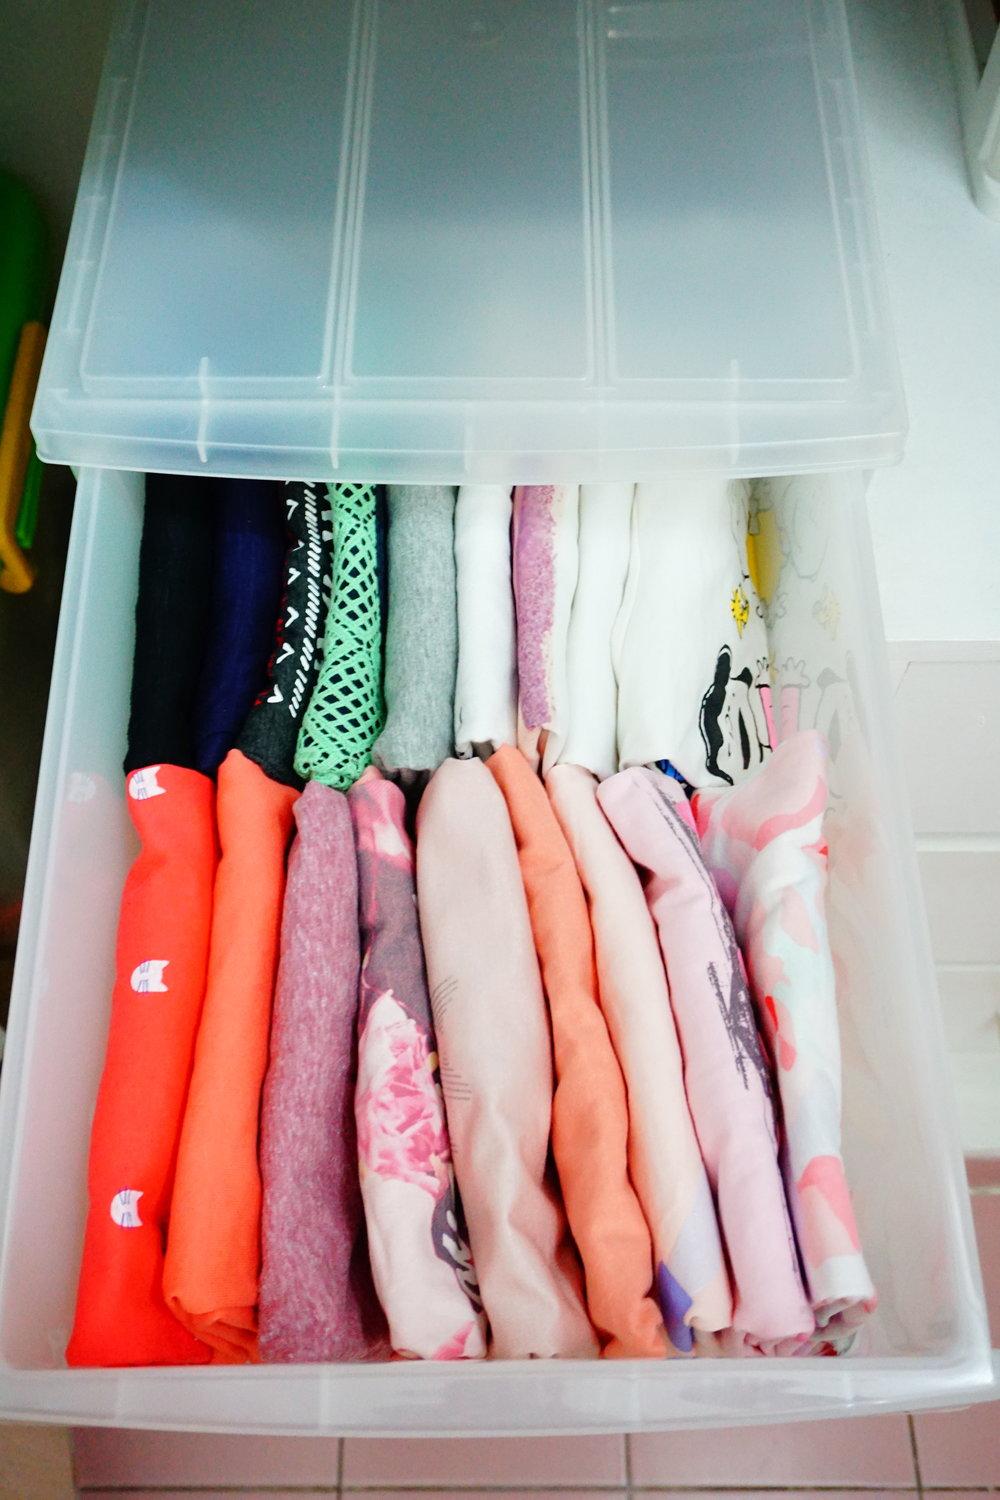 Konmari Method of Storing Shirts - Fold shirts into rectangle, file vertically and fill your drawer 90% full.